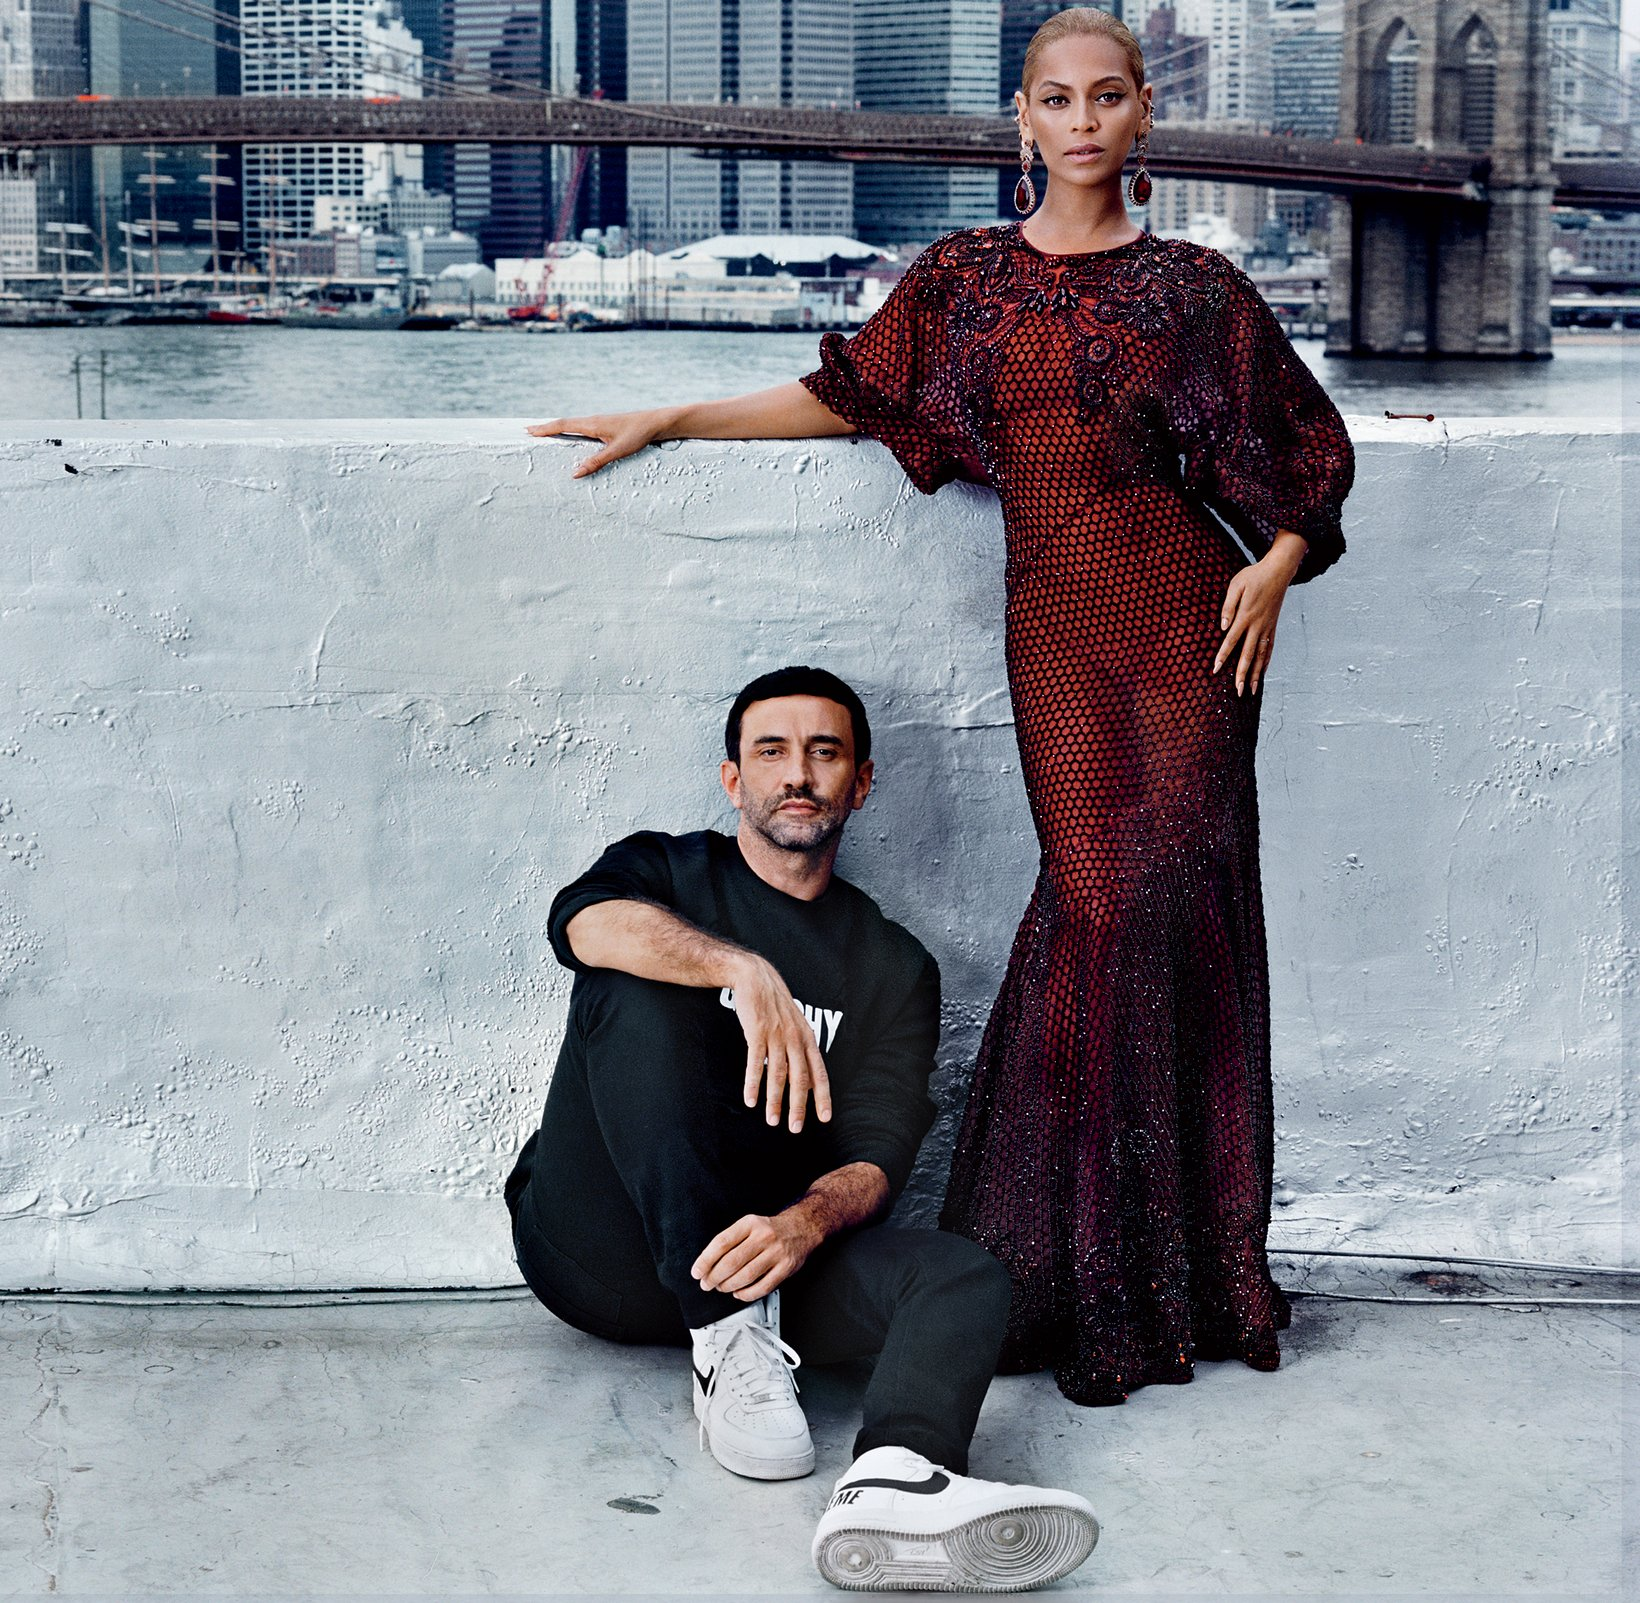 riccardo-tisci-in-givenchy-for-vogue